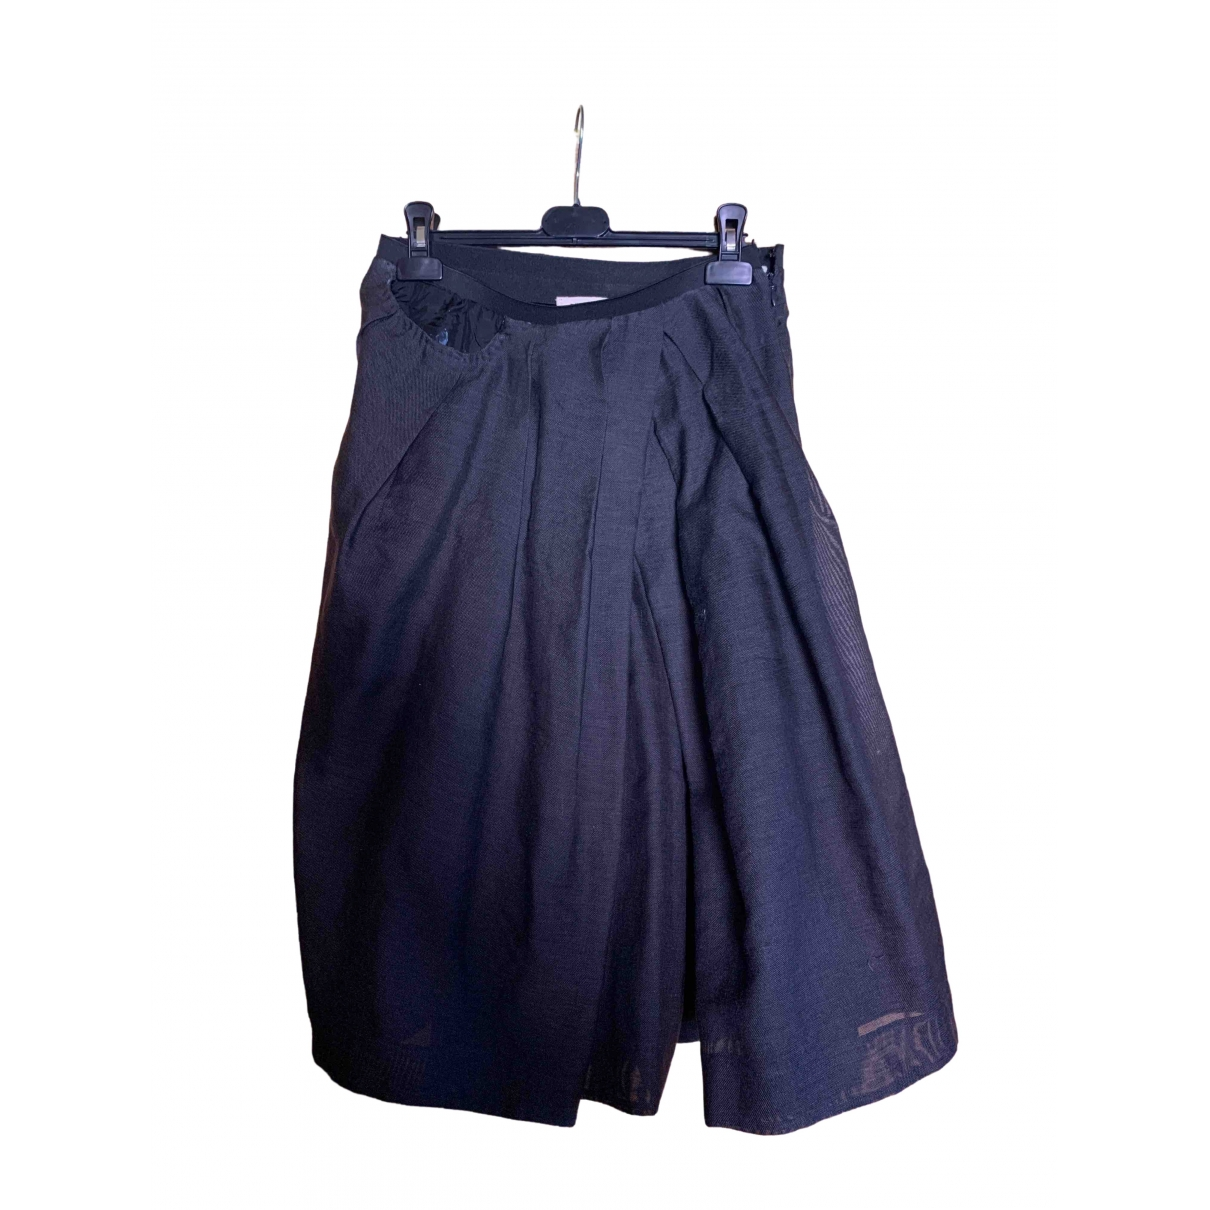 Marni \N Anthracite Cotton skirt for Women 40 IT